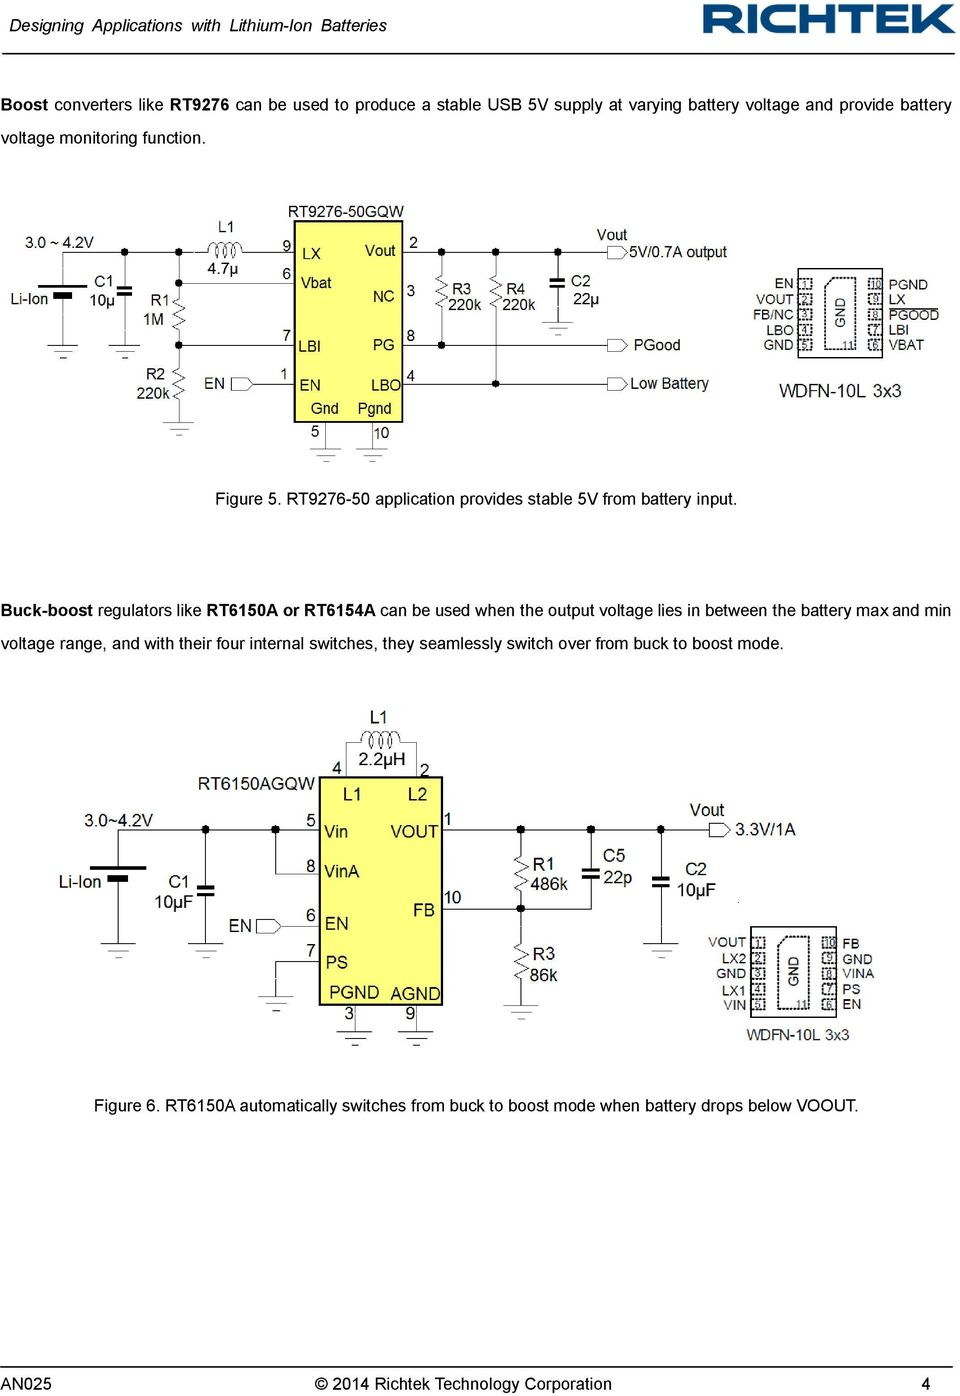 Buck-boost regulators like RT6150A or RT6154A can be used when the output voltage lies in between the battery max and min voltage range, and with